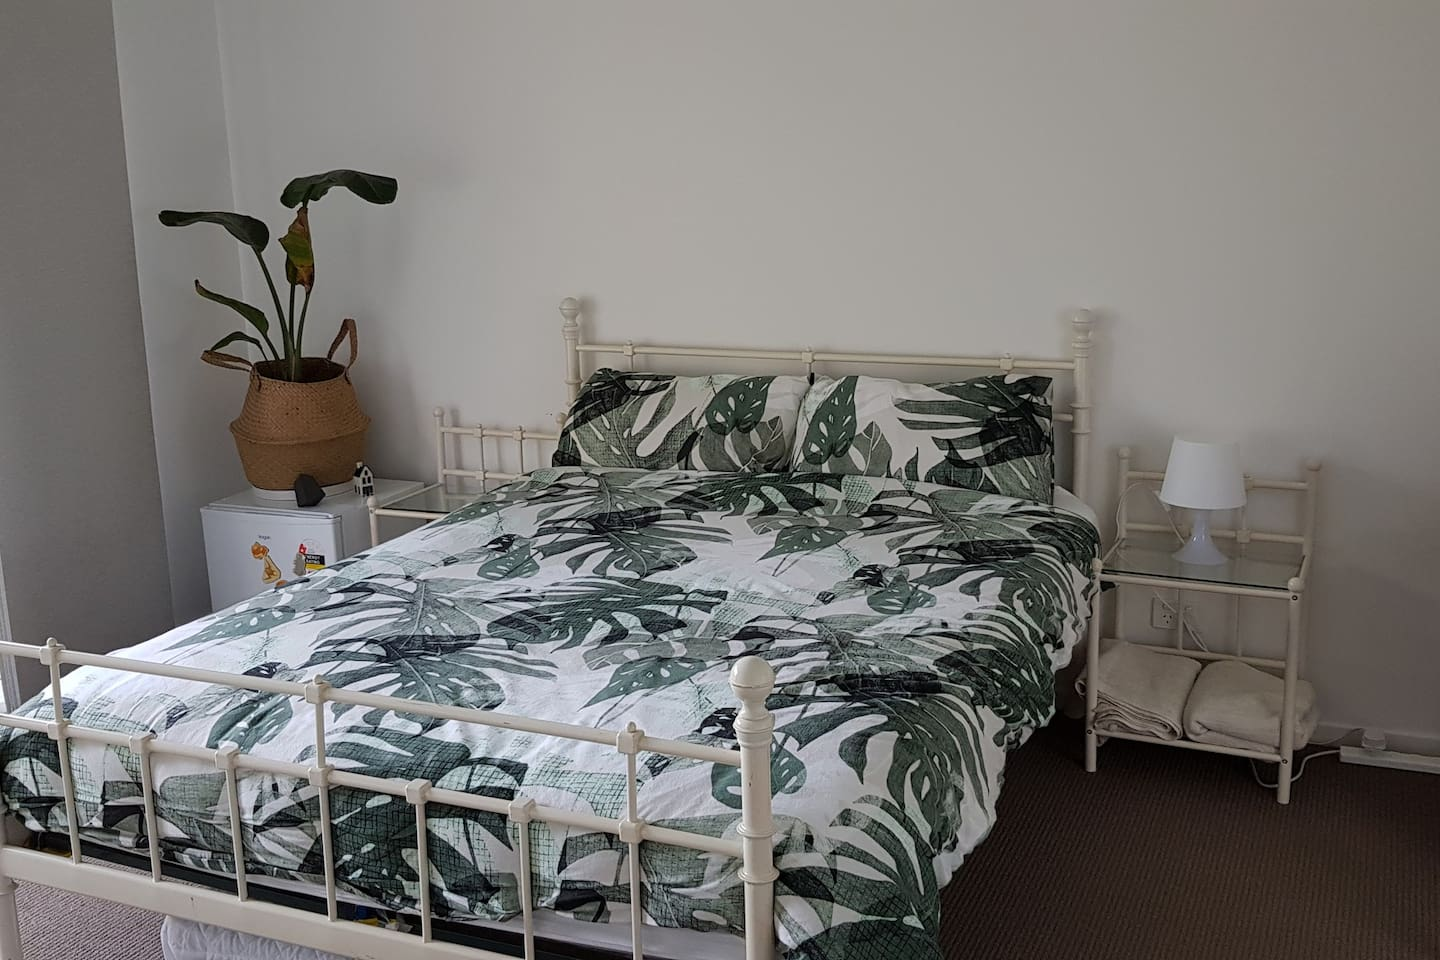 Comfortable queen bed and single mattrass if needed